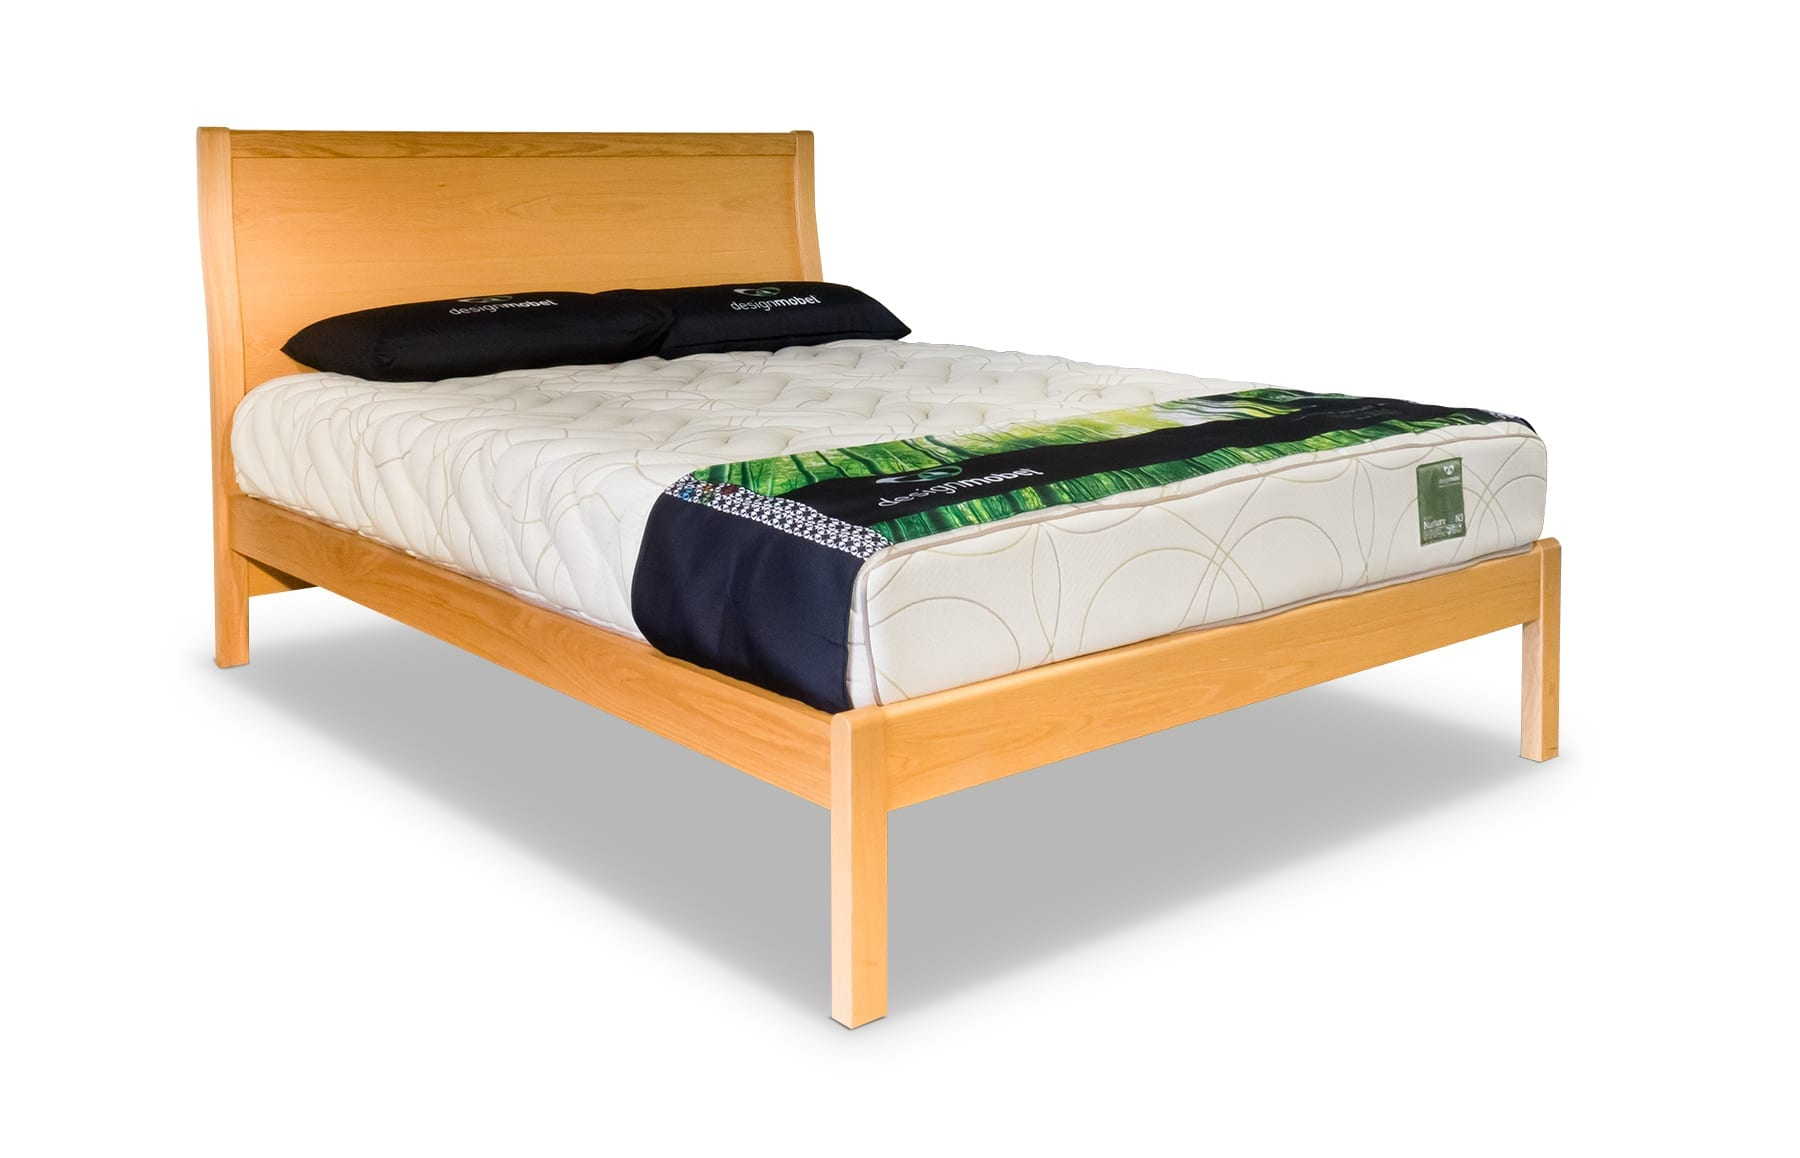 Home Beds Mattresses Design Mobel Bodyfit Nurture 3